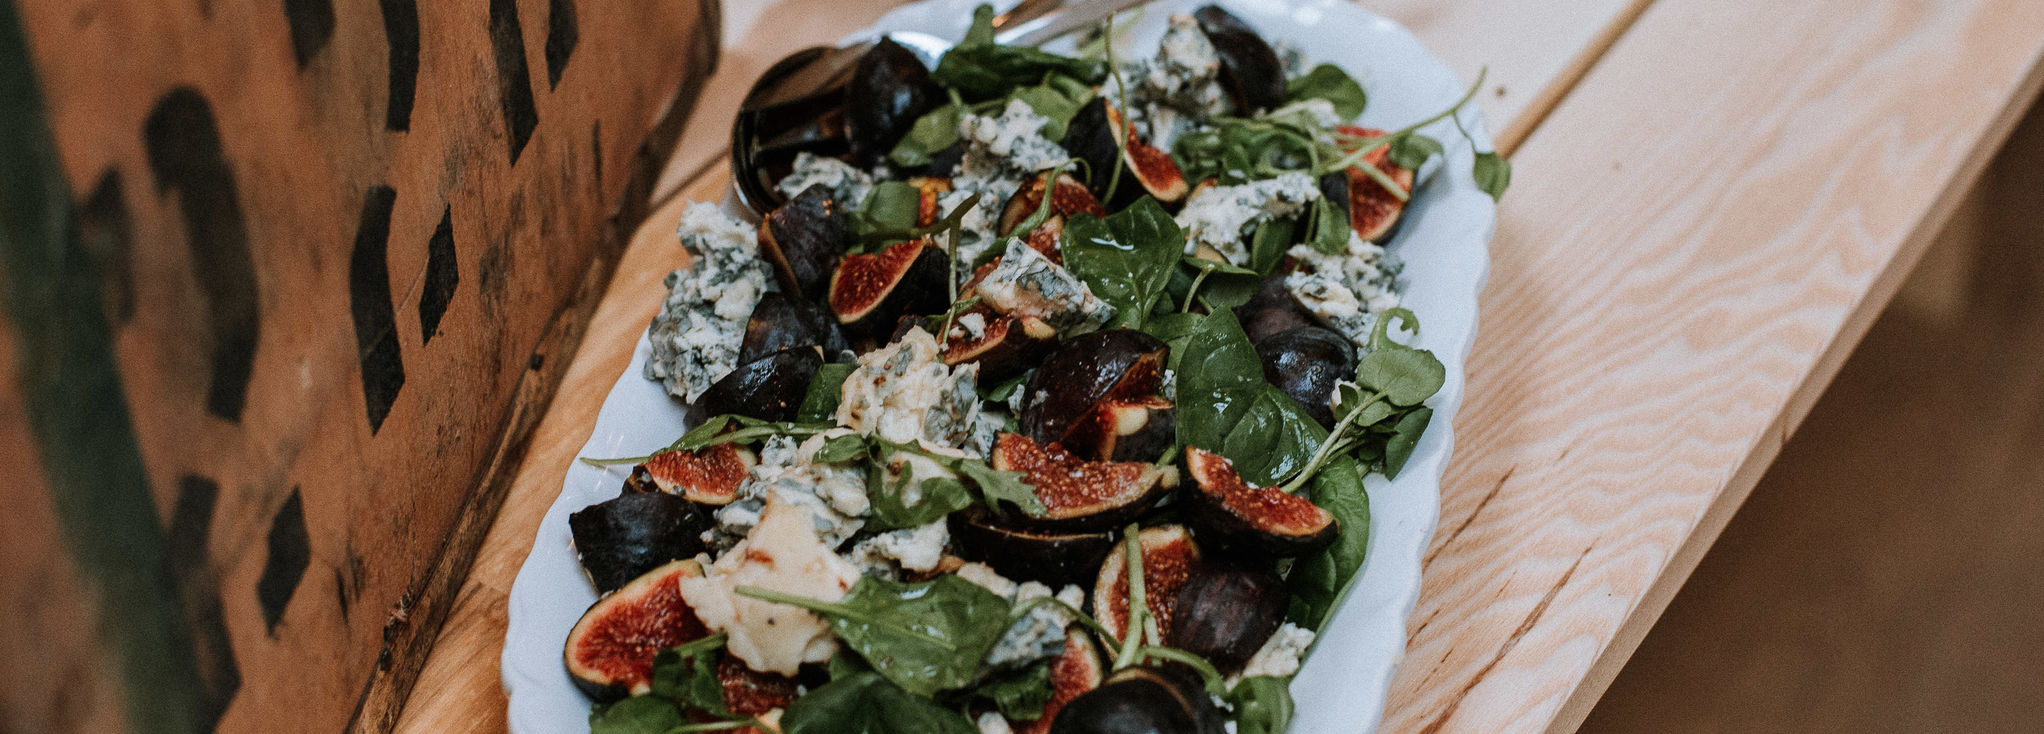 Fig salad, come and learn at Guardswell Farm in the Cart Shed Kitchen at Guardswell Farm